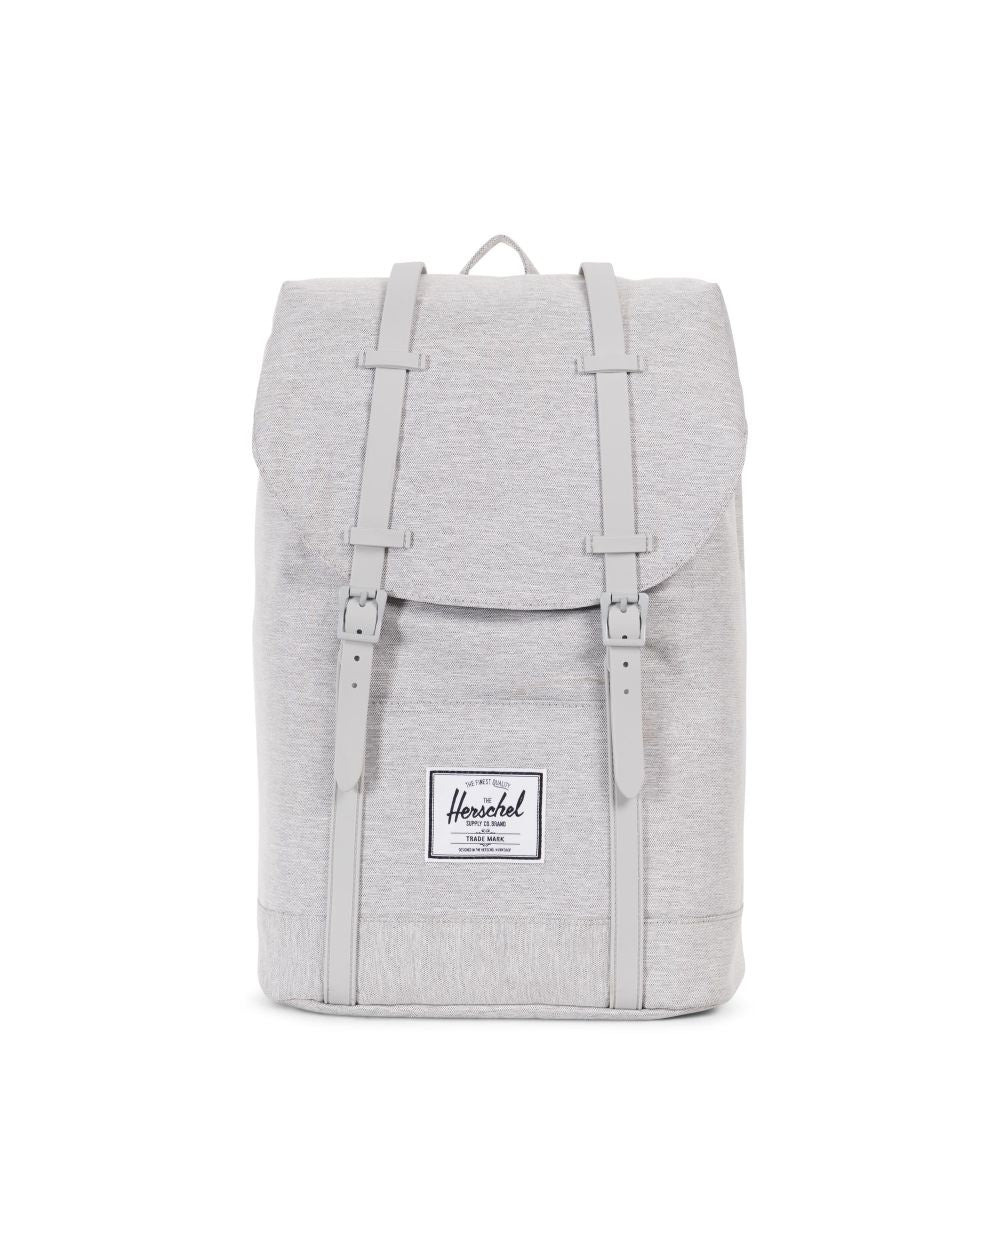 Herschel Supply Co. - Retreat Backpack, Light Grey Crosshatch